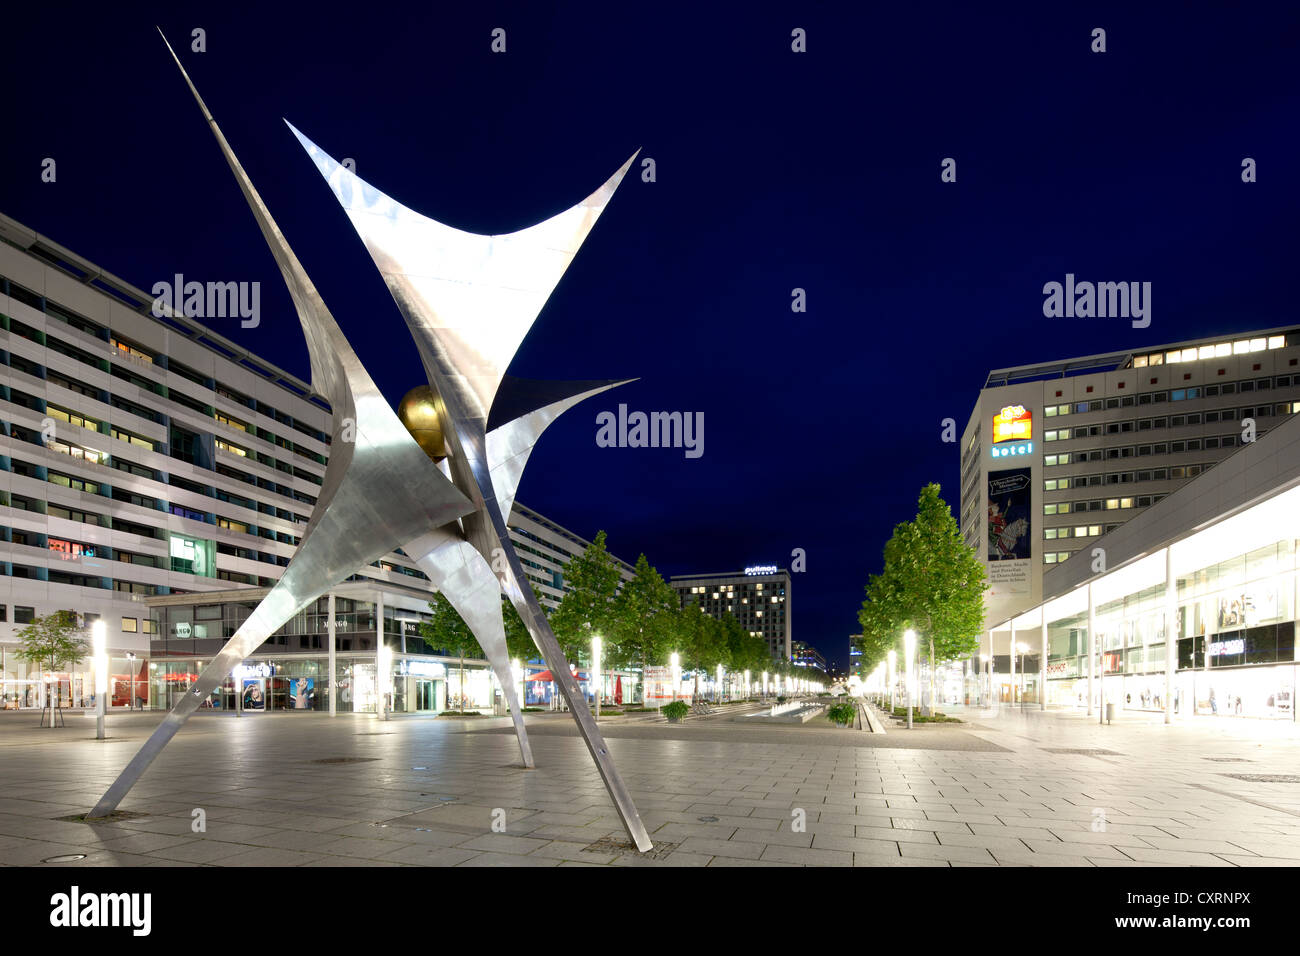 Sculpture, Voelkerfreundschaft, friendship between nations, commercial buildings and hotels, high rise, Prager Strasse, - Stock Image